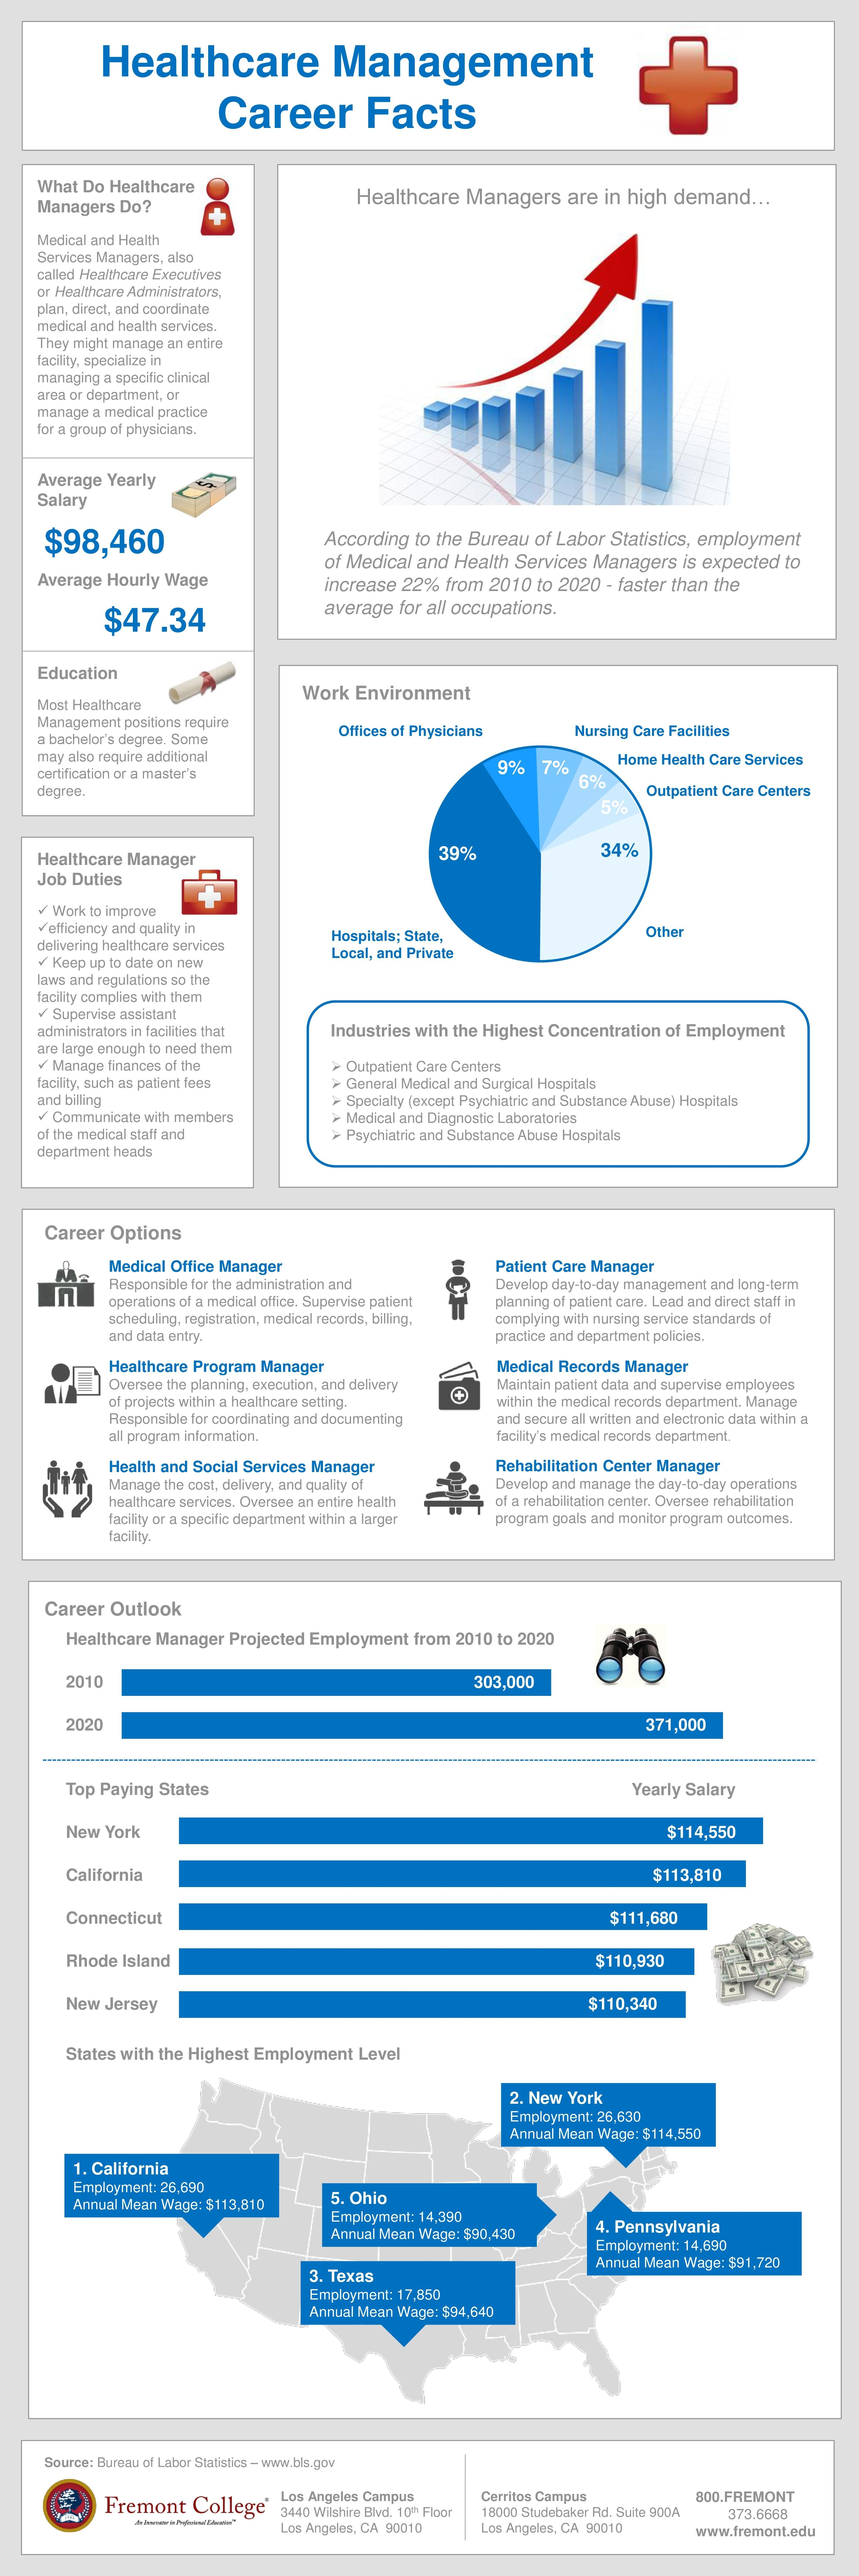 Healthcare Management Career Facts Infographic Healthcare Management Health Information Management Healthcare Administration Career